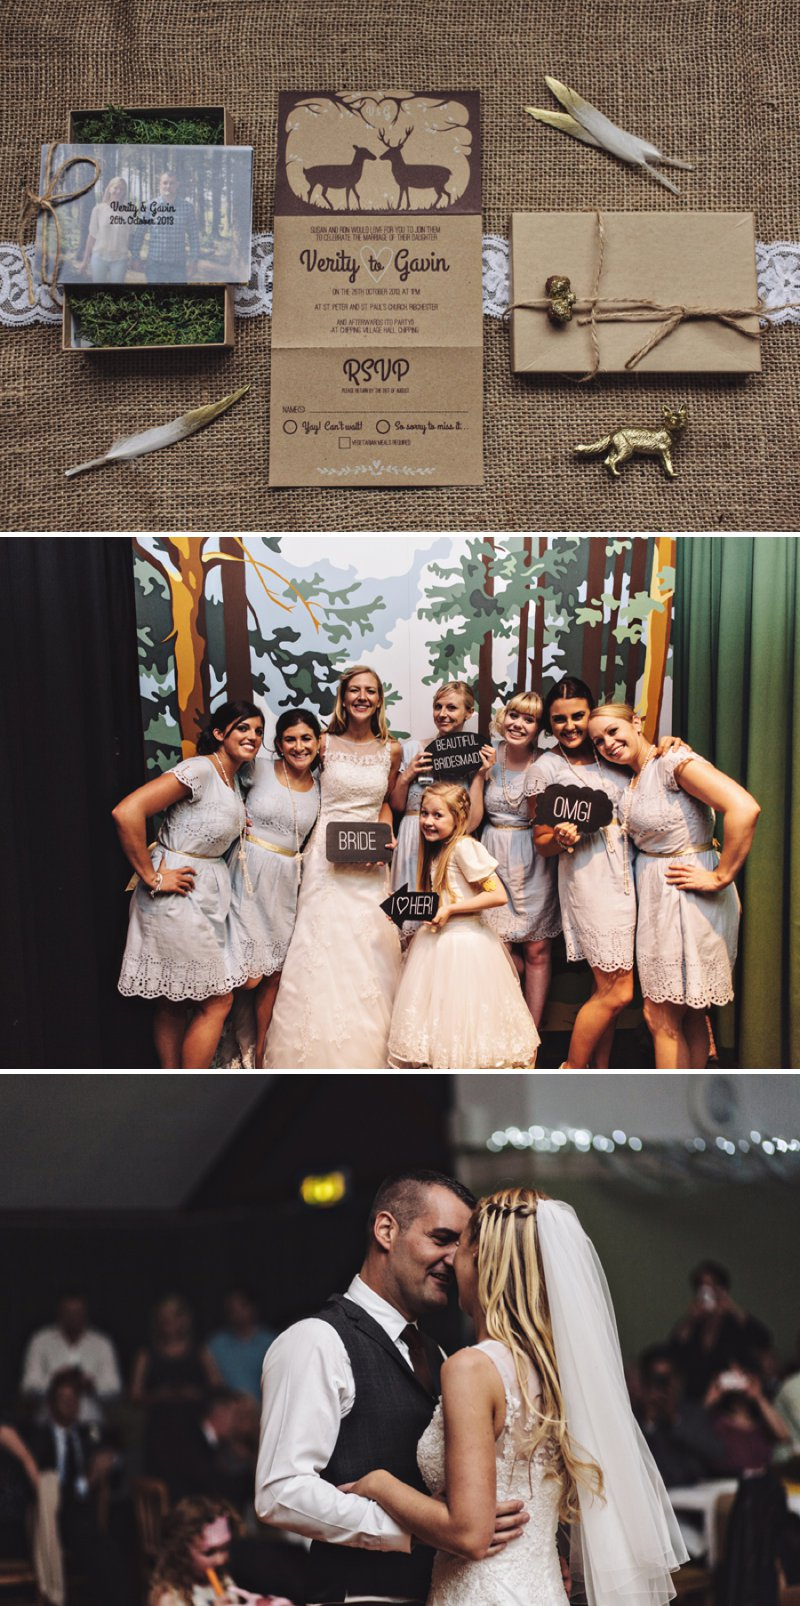 A Rustic Village Hall Wedding With A Blue And Gold Colour Scheme And Stag Graphic Across The Stationery With Bride In Bespoke Dress By Chic Dress And Groom In Brown Suit With Bridesmaids In Baby Blue Dresses With Broderie Anglaise Detail 9